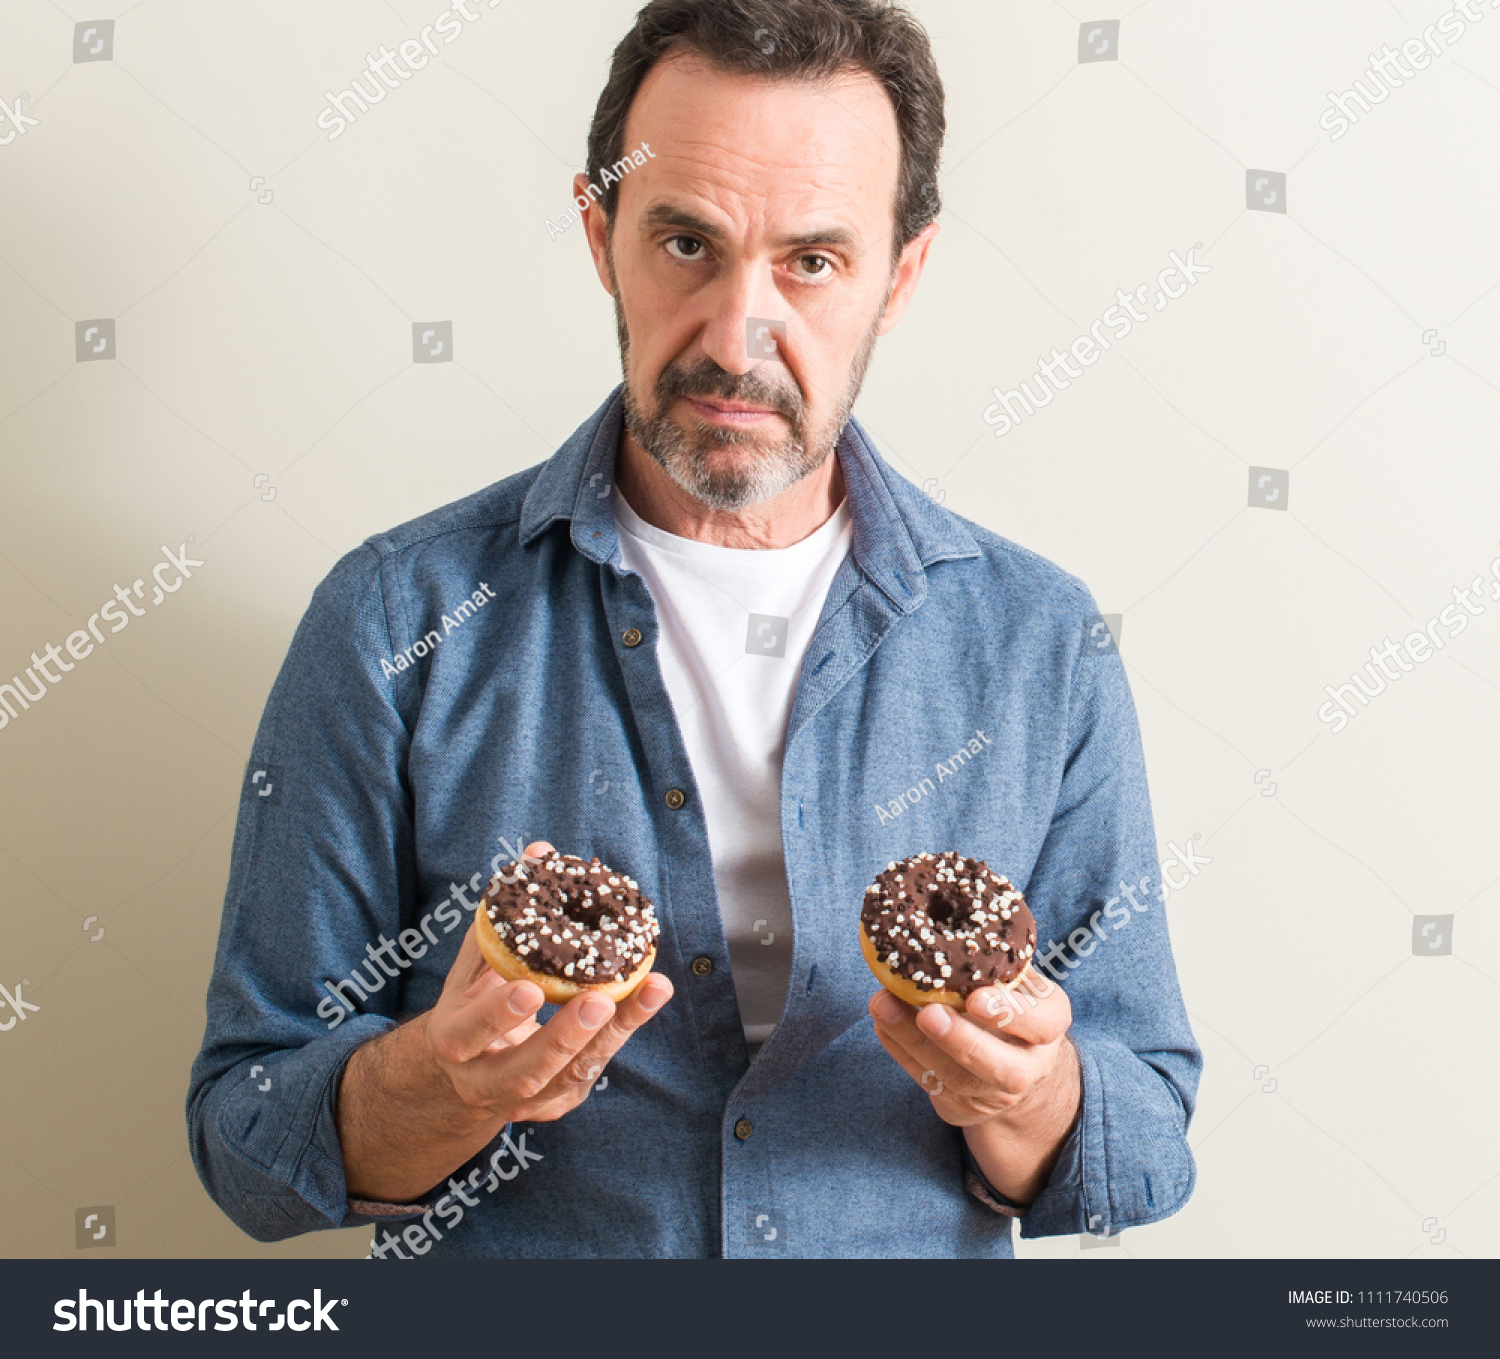 716783cab1e Senior man eating chocolate donut with a confident expression on smart face  thinking serious